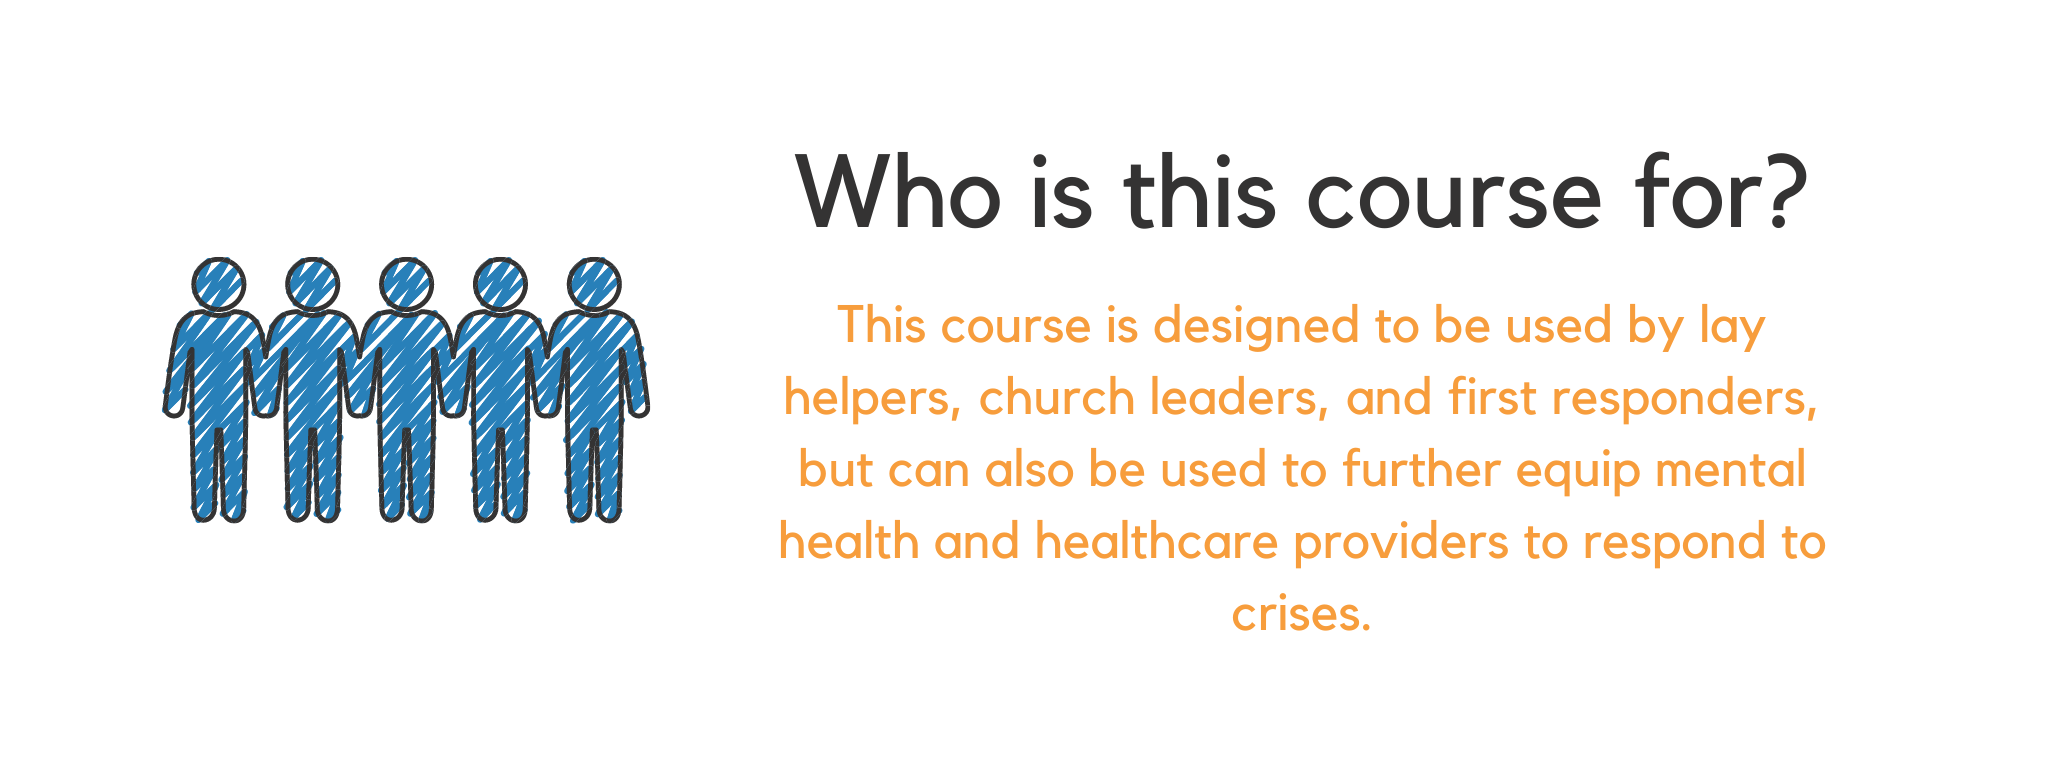 Who is this course for? This course is designed to be used by lay helpers, church leaders, and first responders, but can also be used to further equip mental health and healthcare providers to respond to crises.